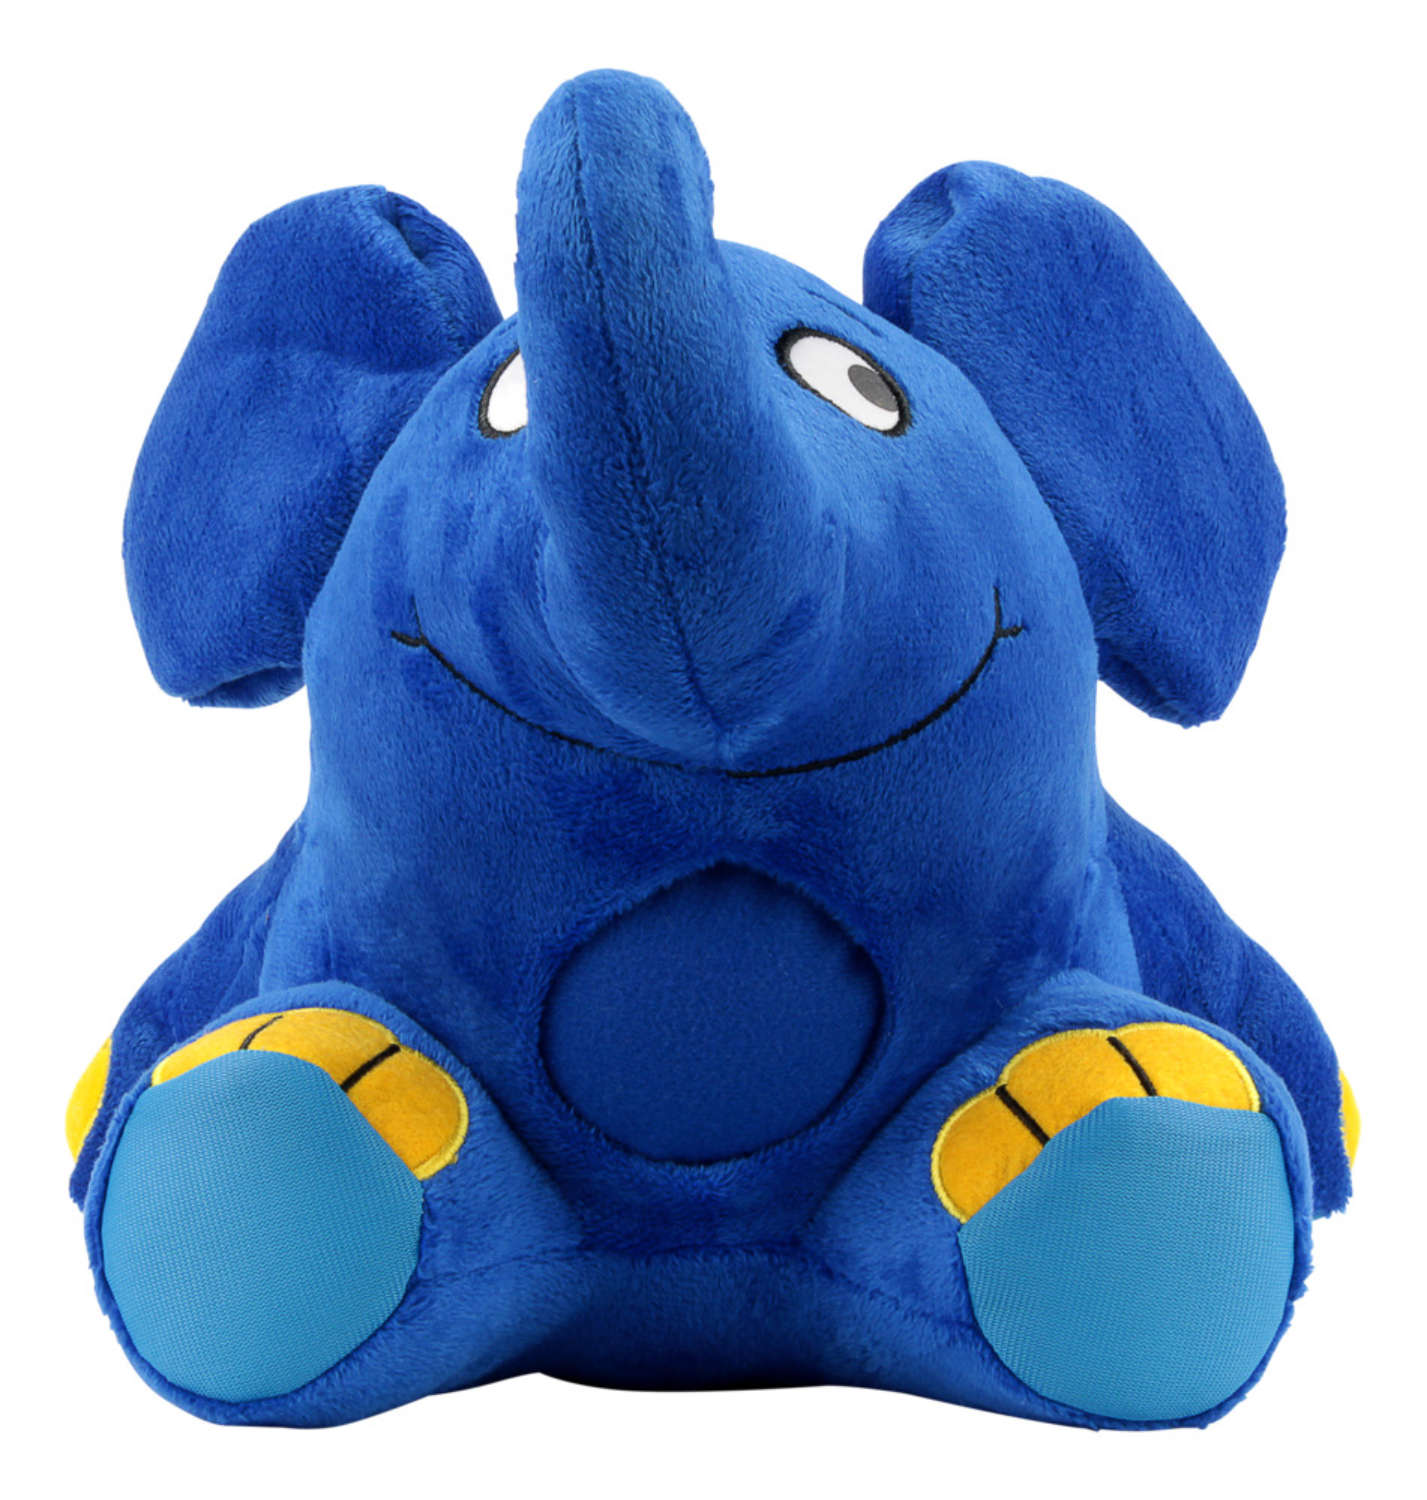 1800-0014_CP-Slumber Nightlight-Die-Maus-Elefant-bu2